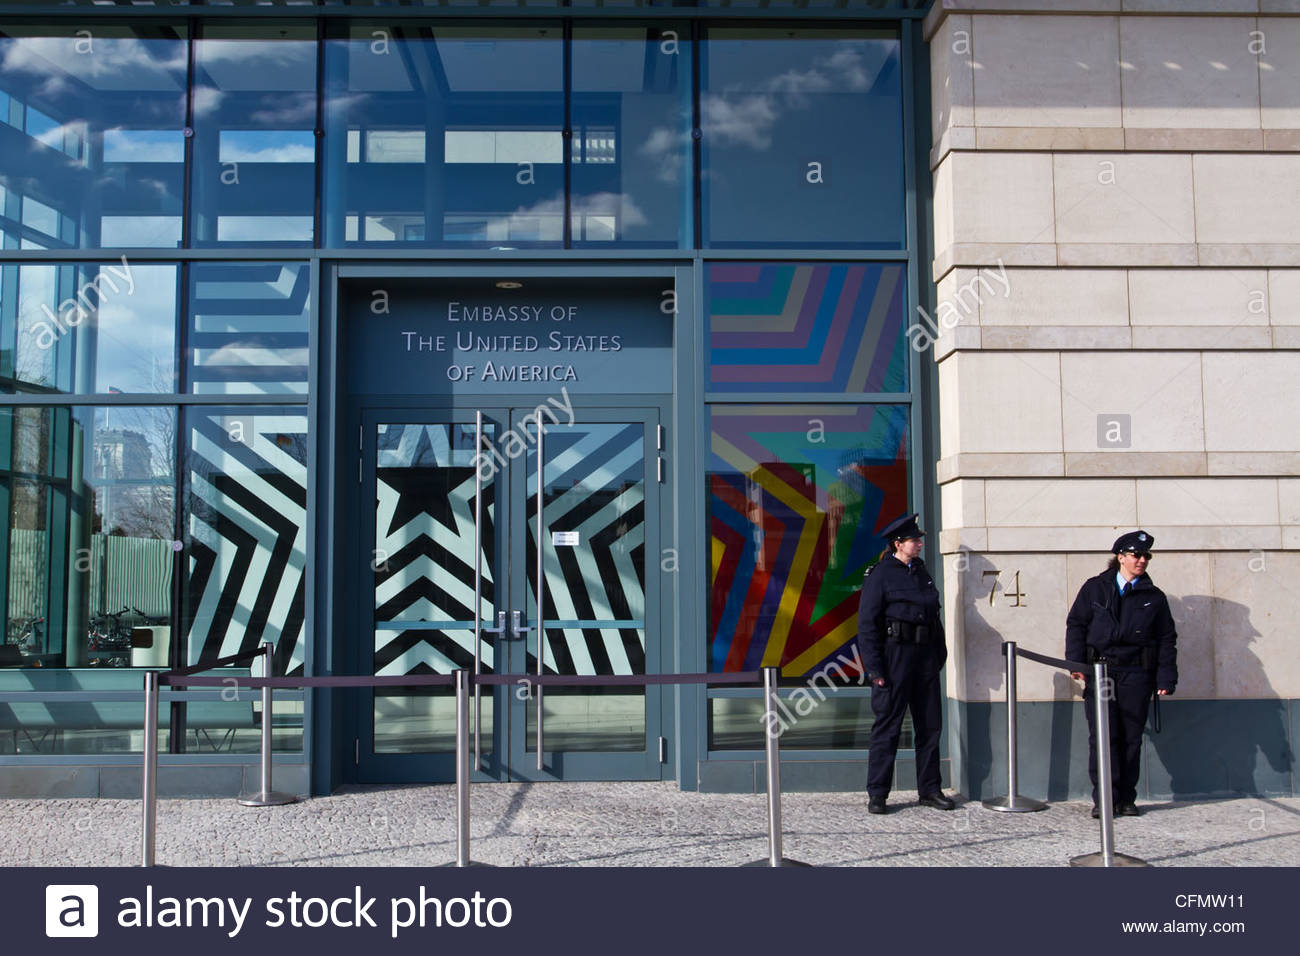 Embassy of the United States of America in Berlin - Stock Image